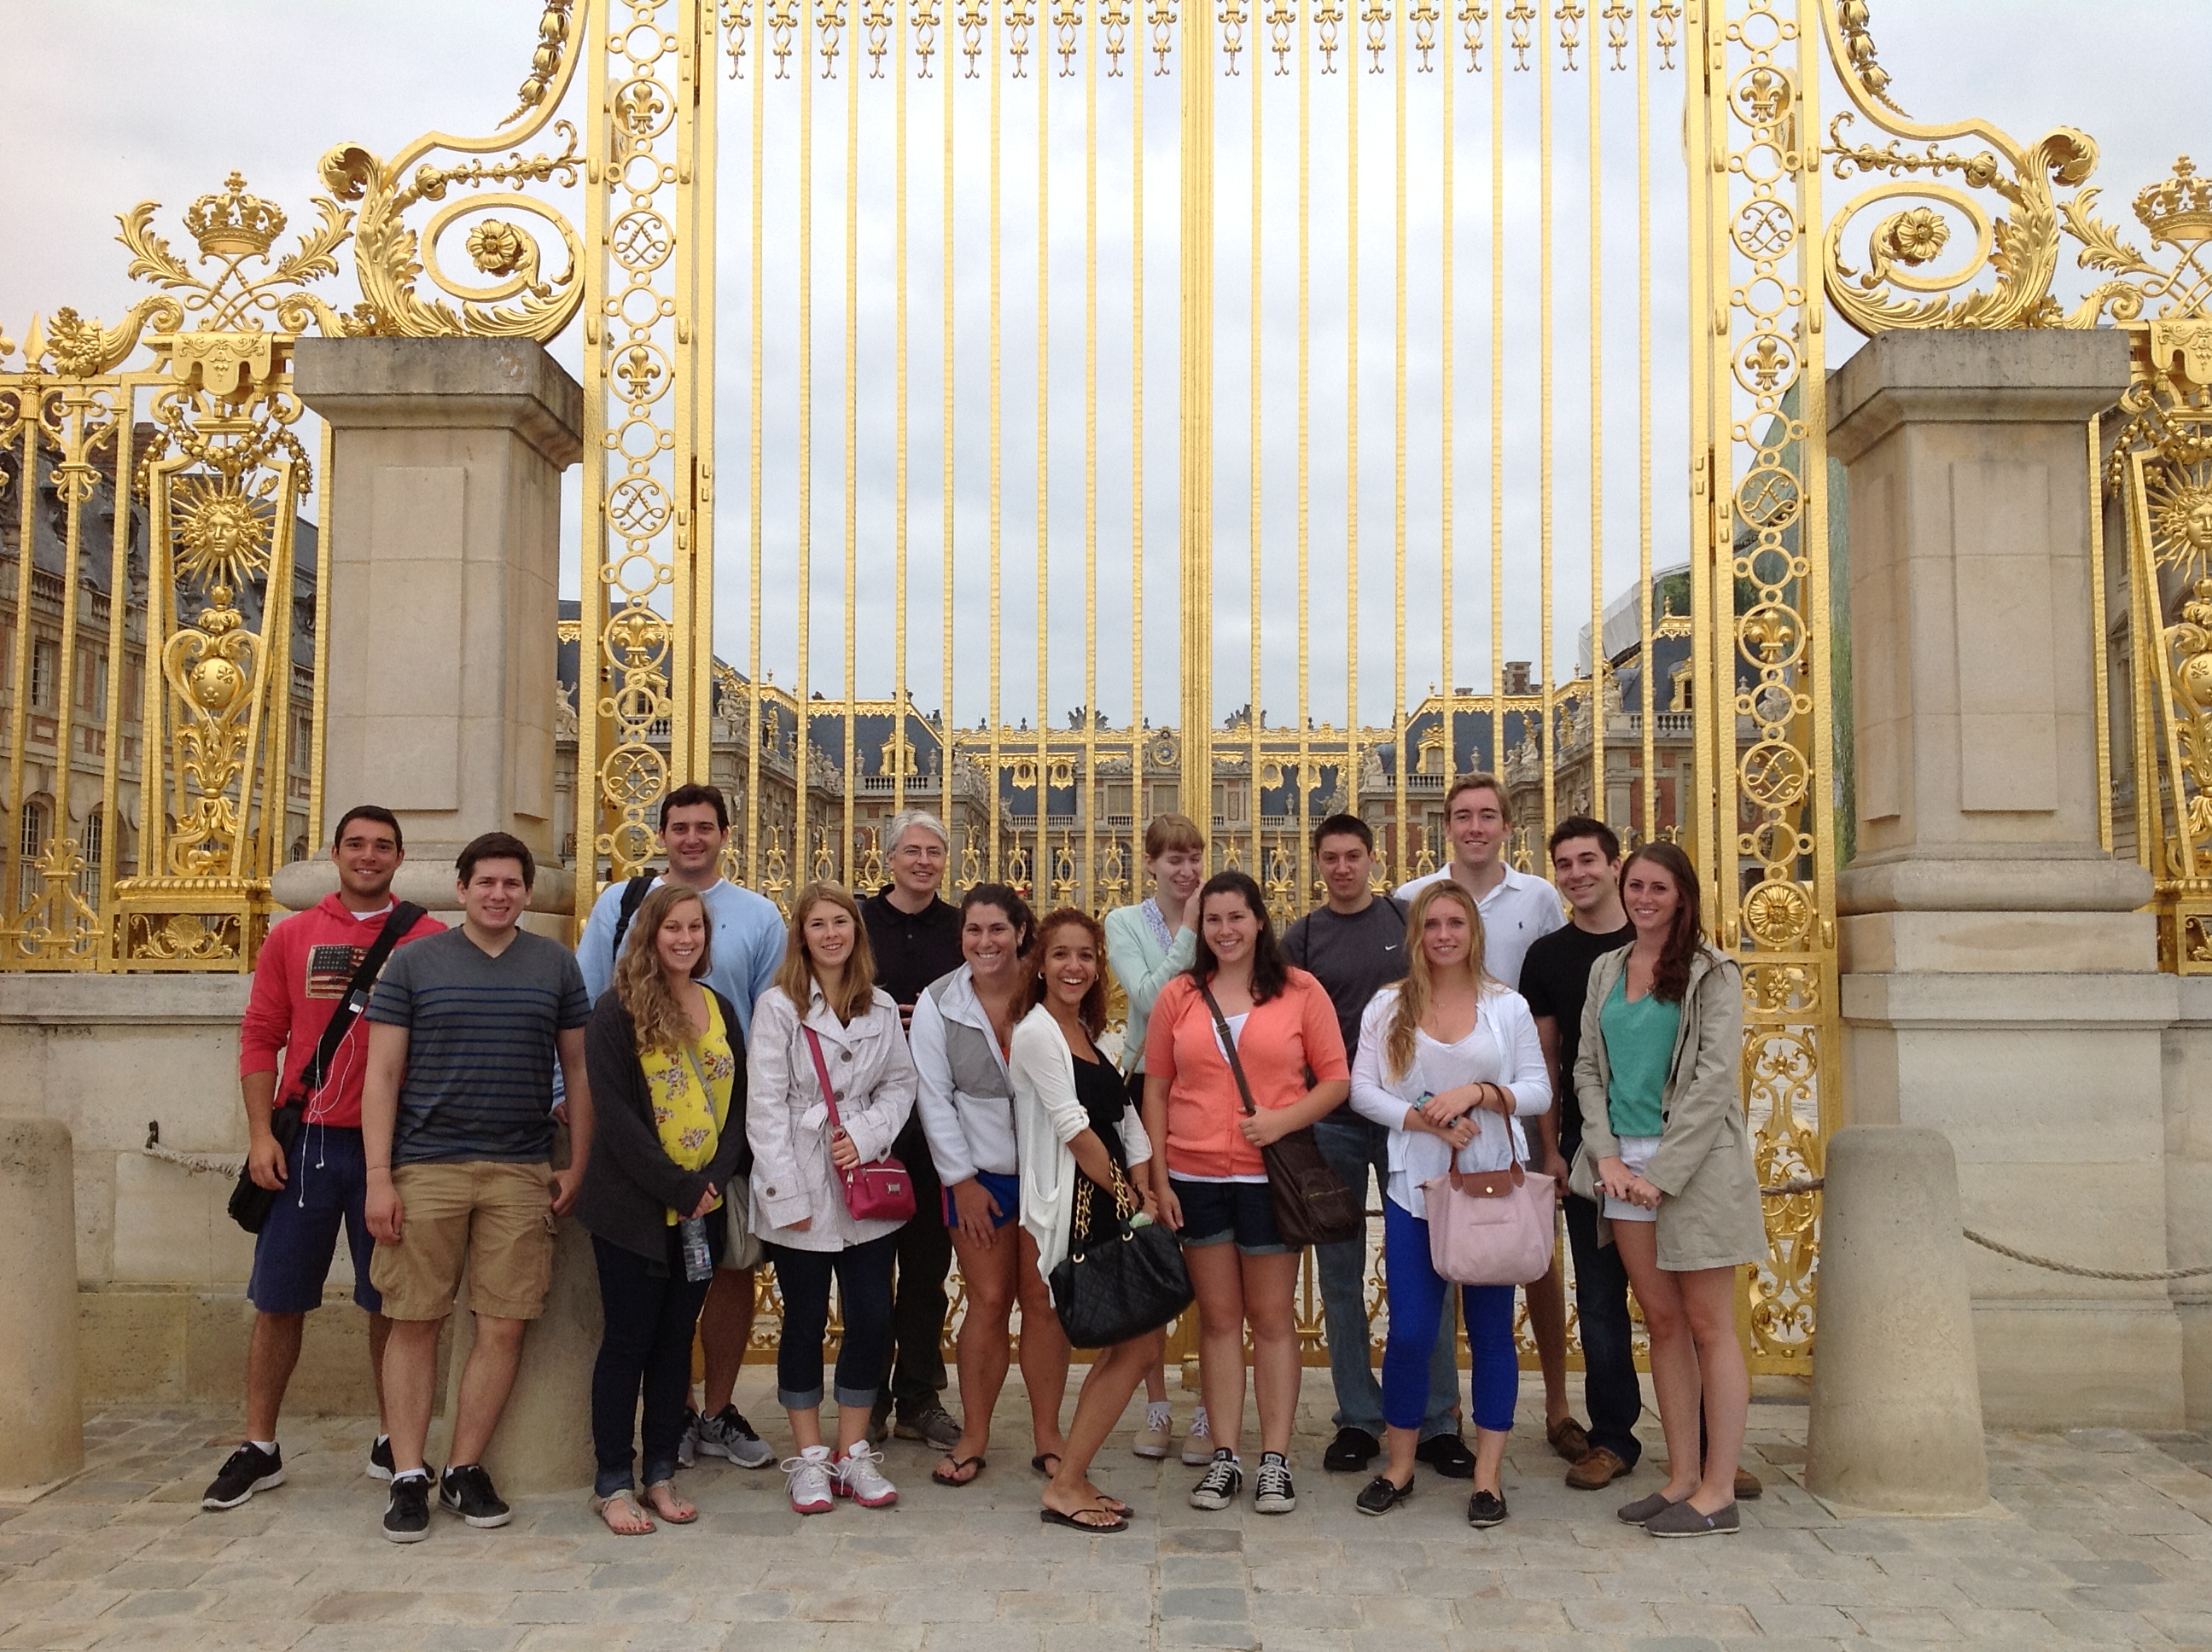 Professor Savage with his Summer Class at Versailles